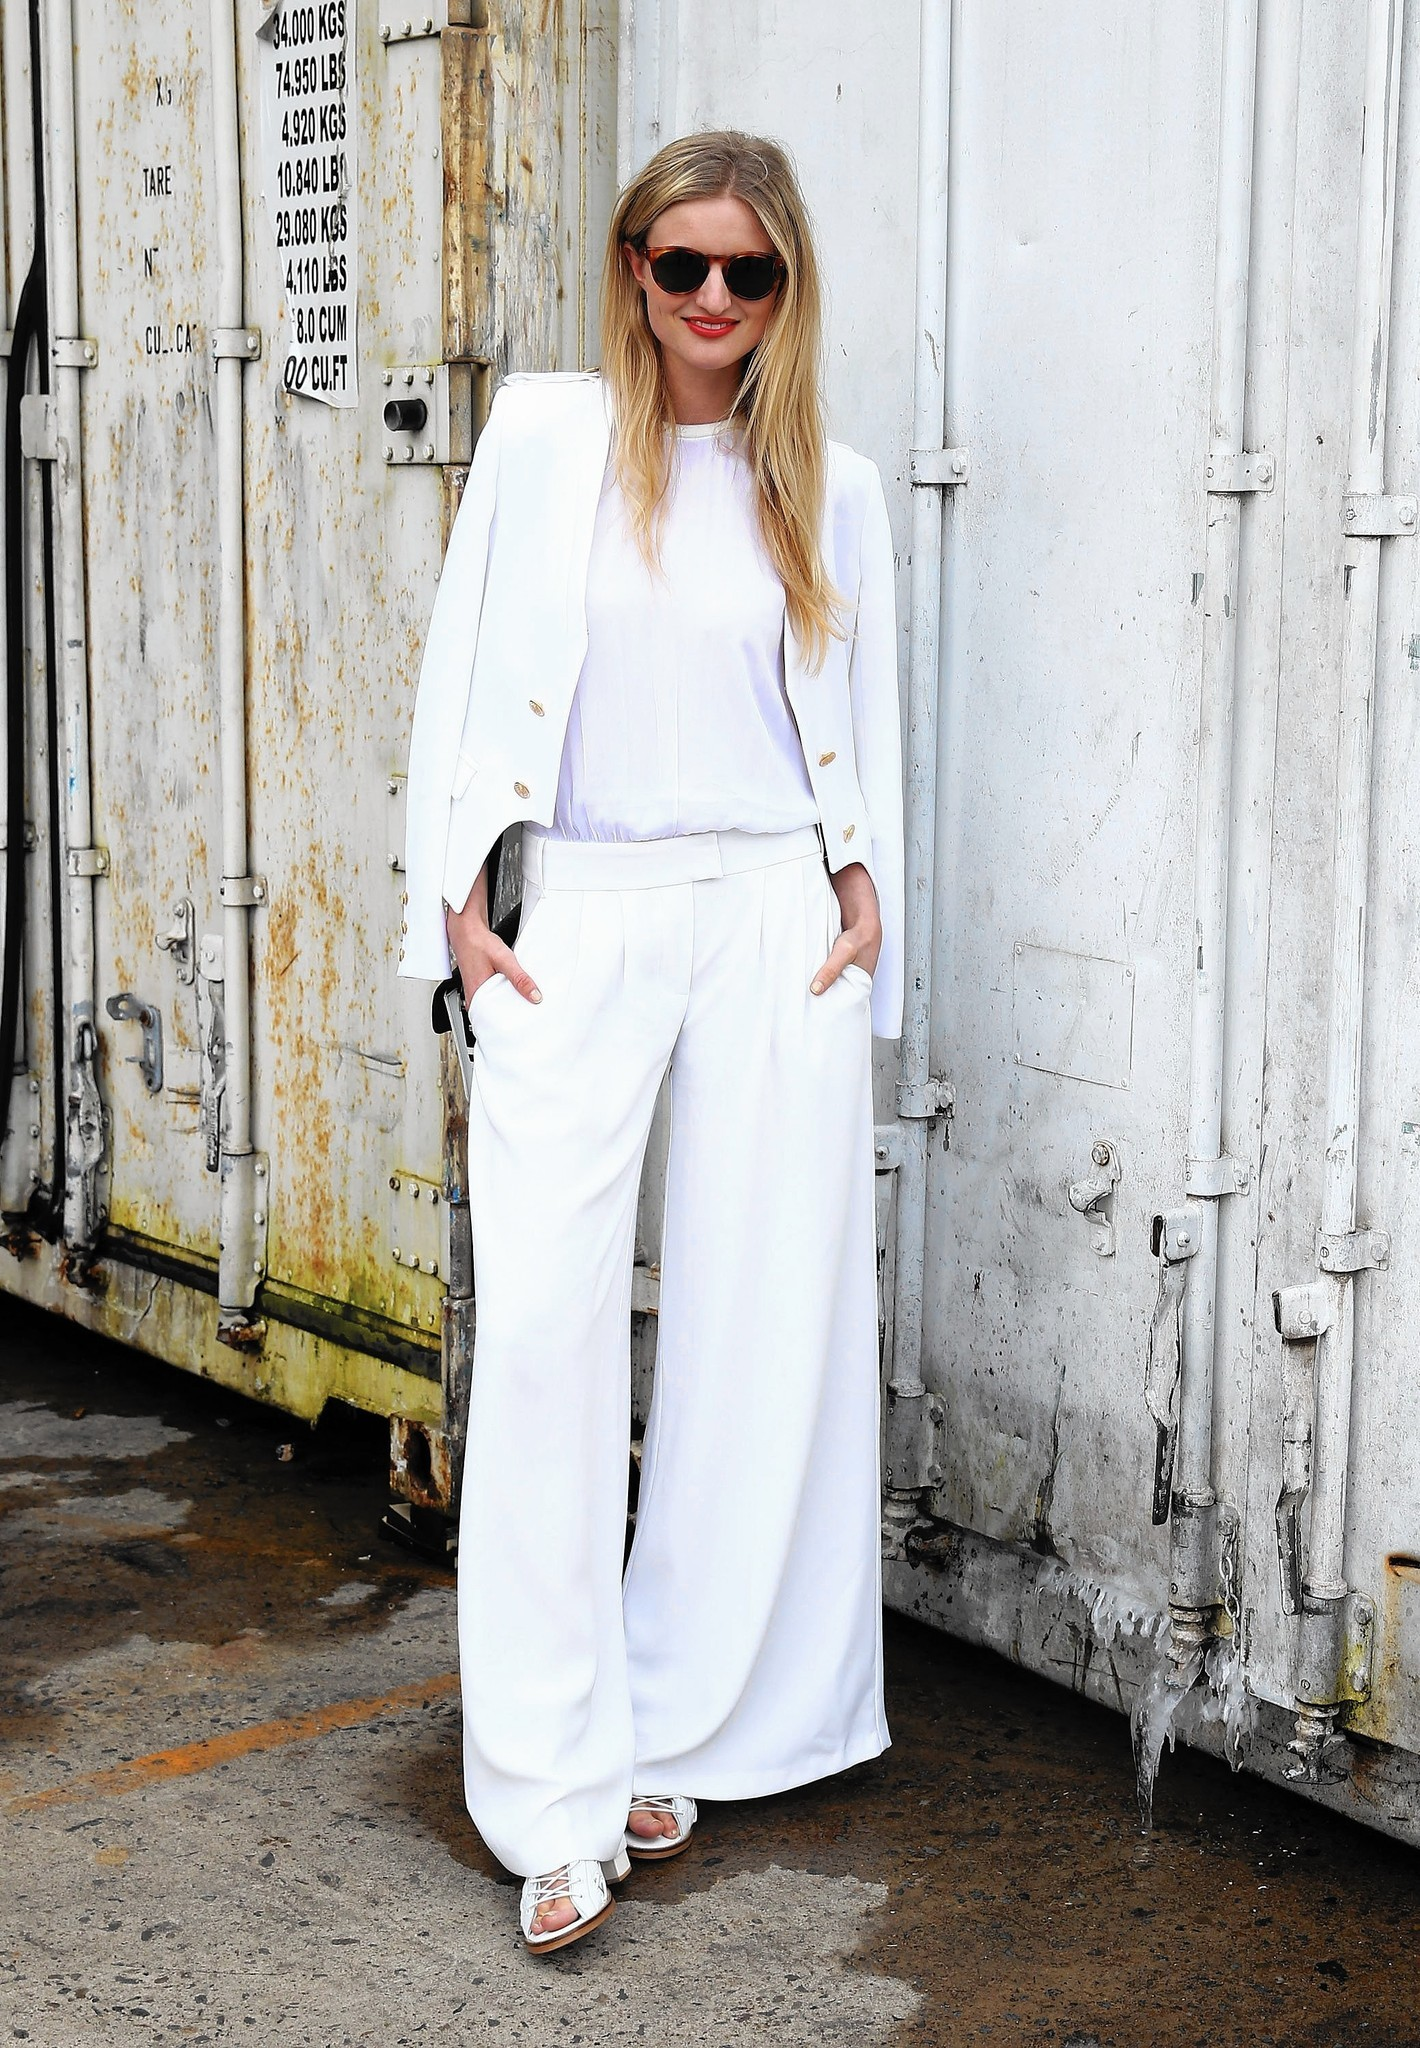 What To Wear Under Summers White Pants Chicago Tribune